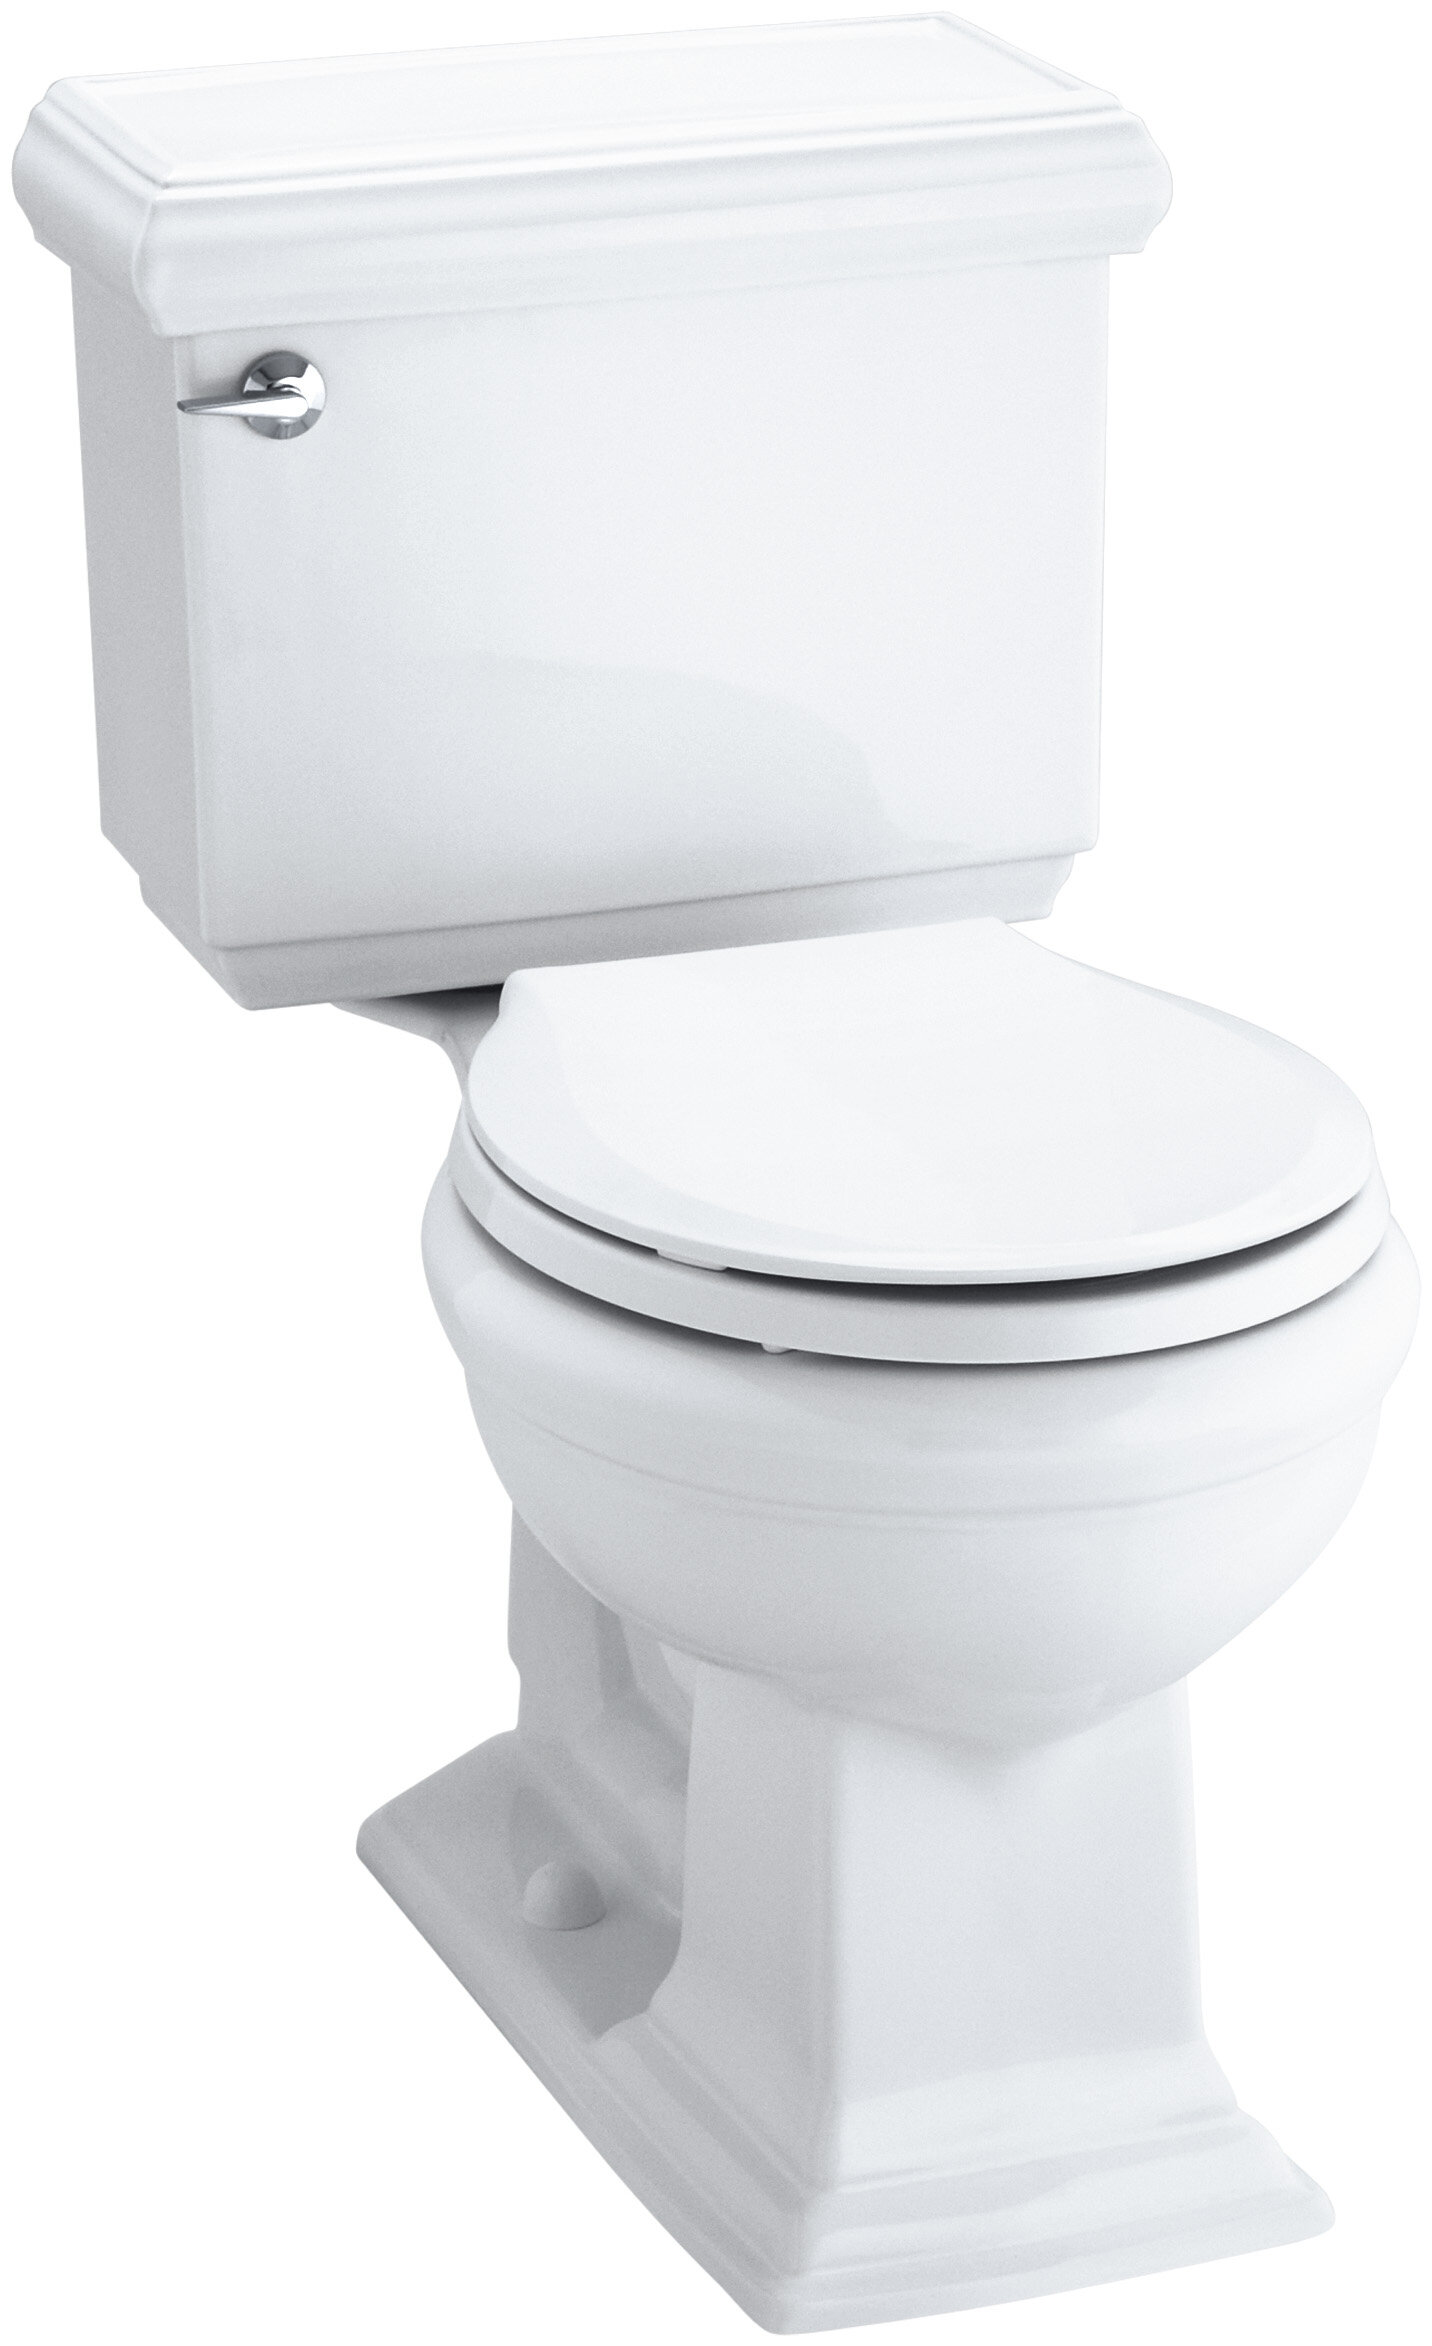 K-3986-0,47,7 Kohler Memoirs Impressions Classic Comfort Height Two ...